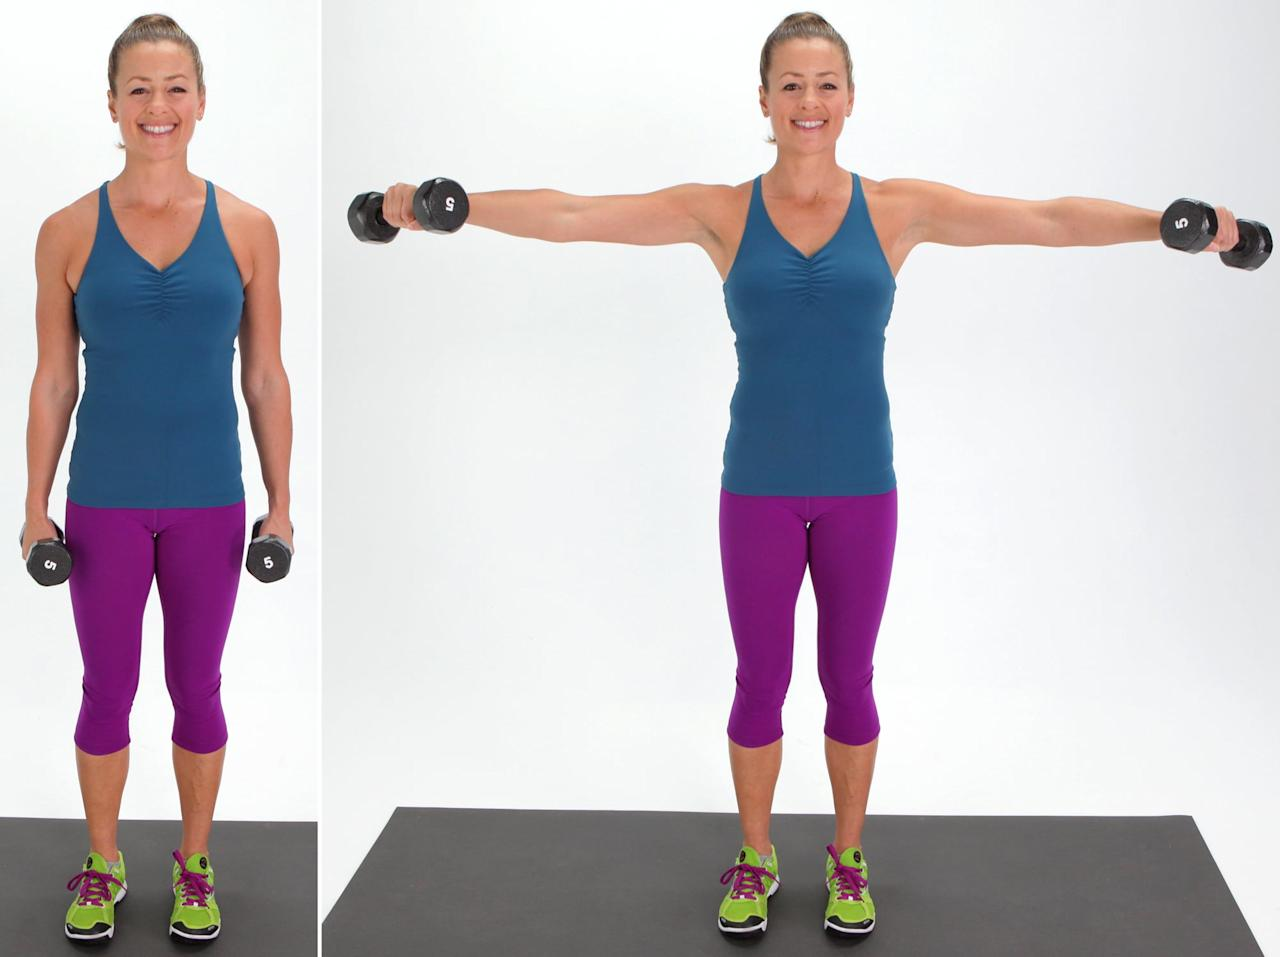 <ul> <li>Stand with your feet hip-distance apart. Hold a dumbbell in each hand so your palms face in toward the sides of your body.</li> <li>With control, keep your arms straight (but don't lock your elbows), and as you inhale, simultaneously raise both hands toward the ceiling. You want your palms to be facing down and your arms to be parallel to the floor. Then, as you exhale, slowly lower your hands back to your body. You should be able to see your hand in your peripheral vision, so your arm won't be directly out to the side, but slightly forward.</li> <li>This counts as one rep. Complete 10 reps.</li> </ul>